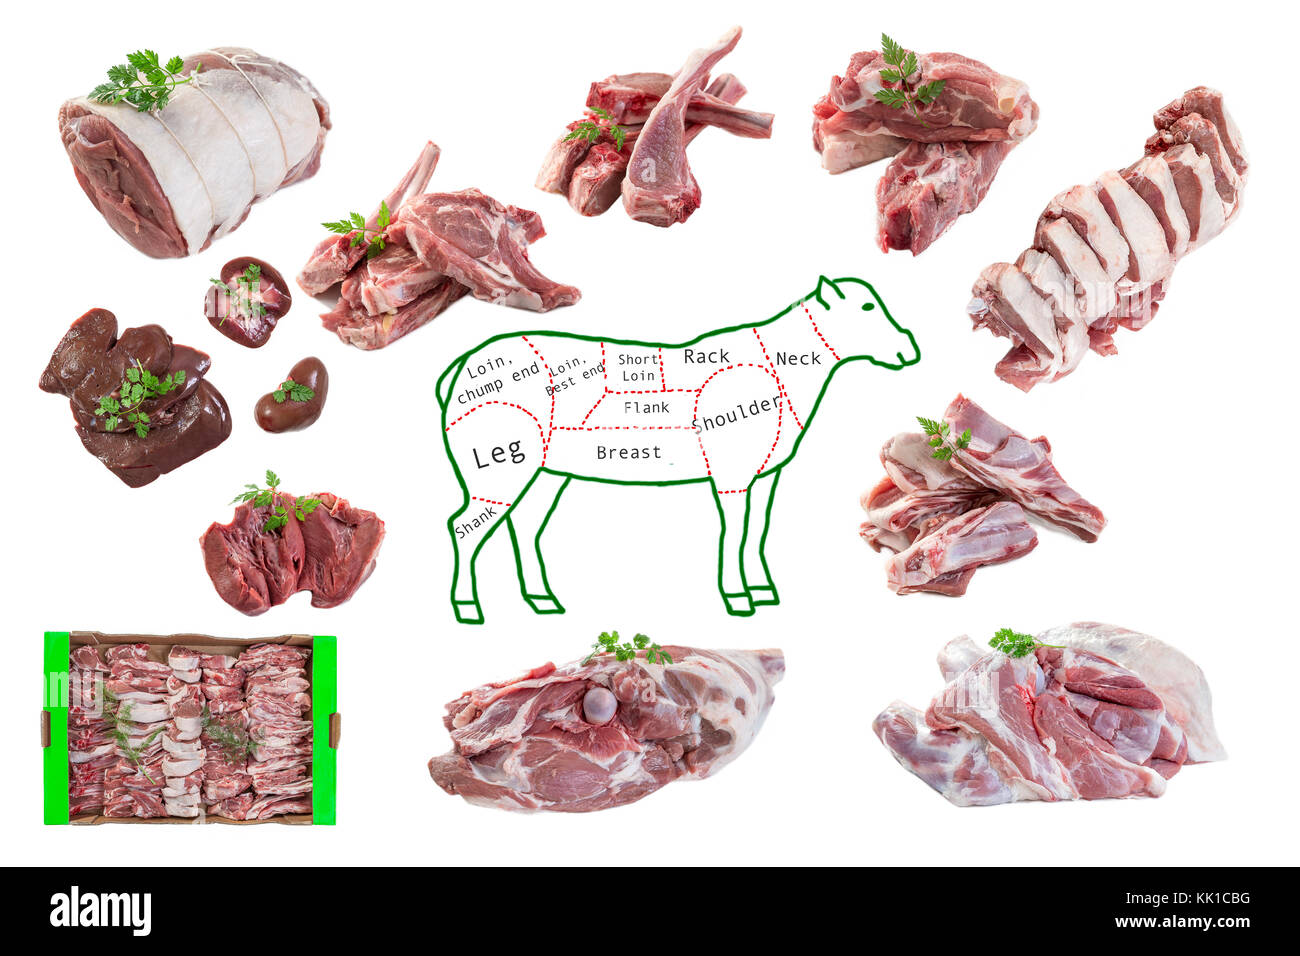 Whole Drawing Mutton In Piece And Raw Pieces Of Lamb Meat On White Background